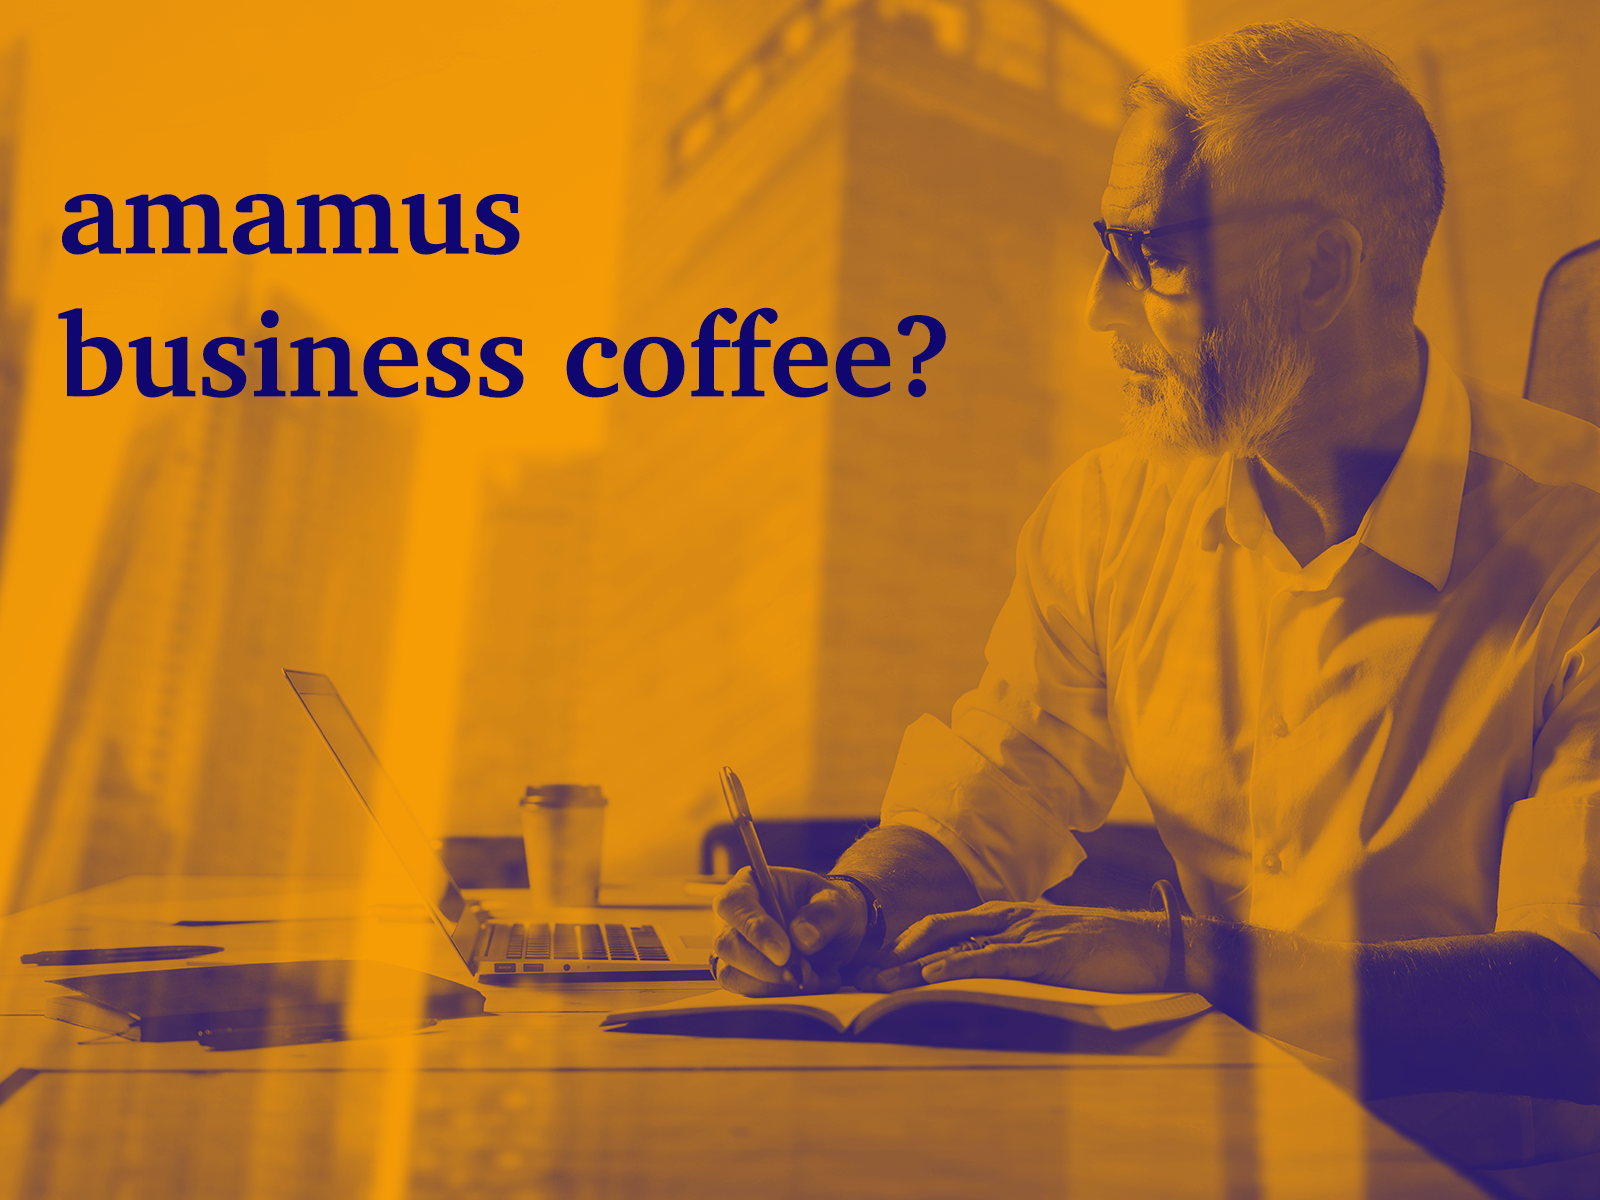 Why invest in a business coffee service?